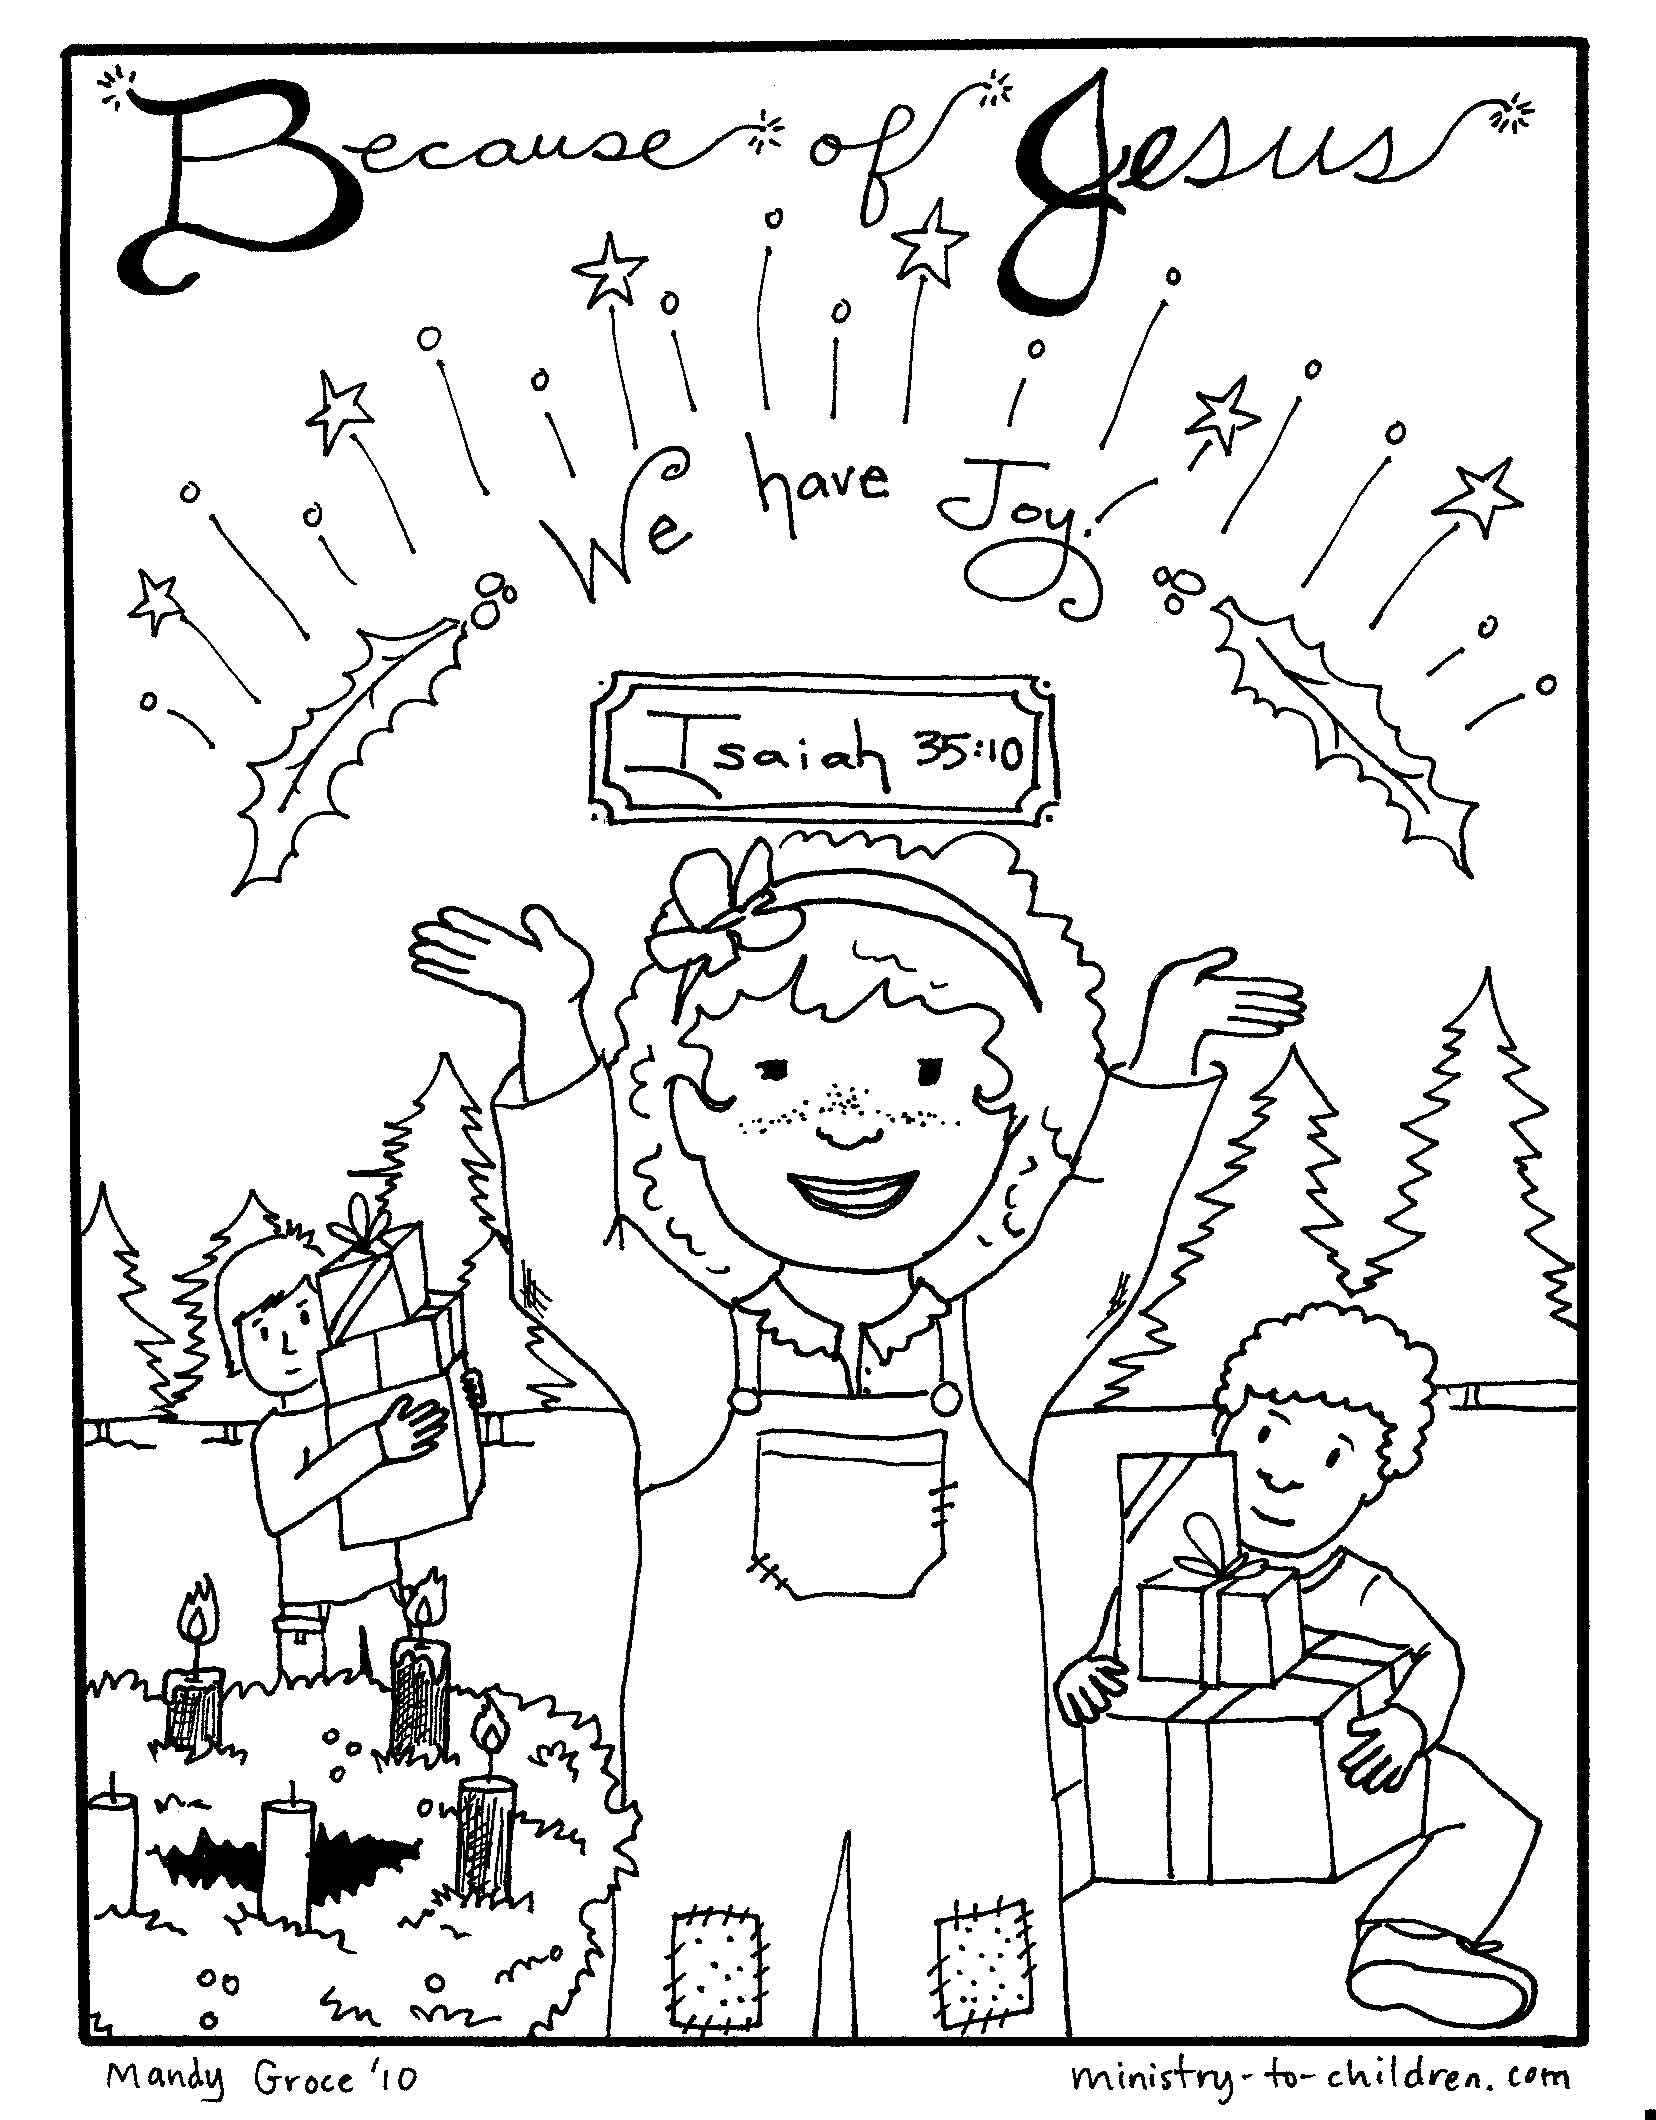 We have Joy - Advent Coloring Page